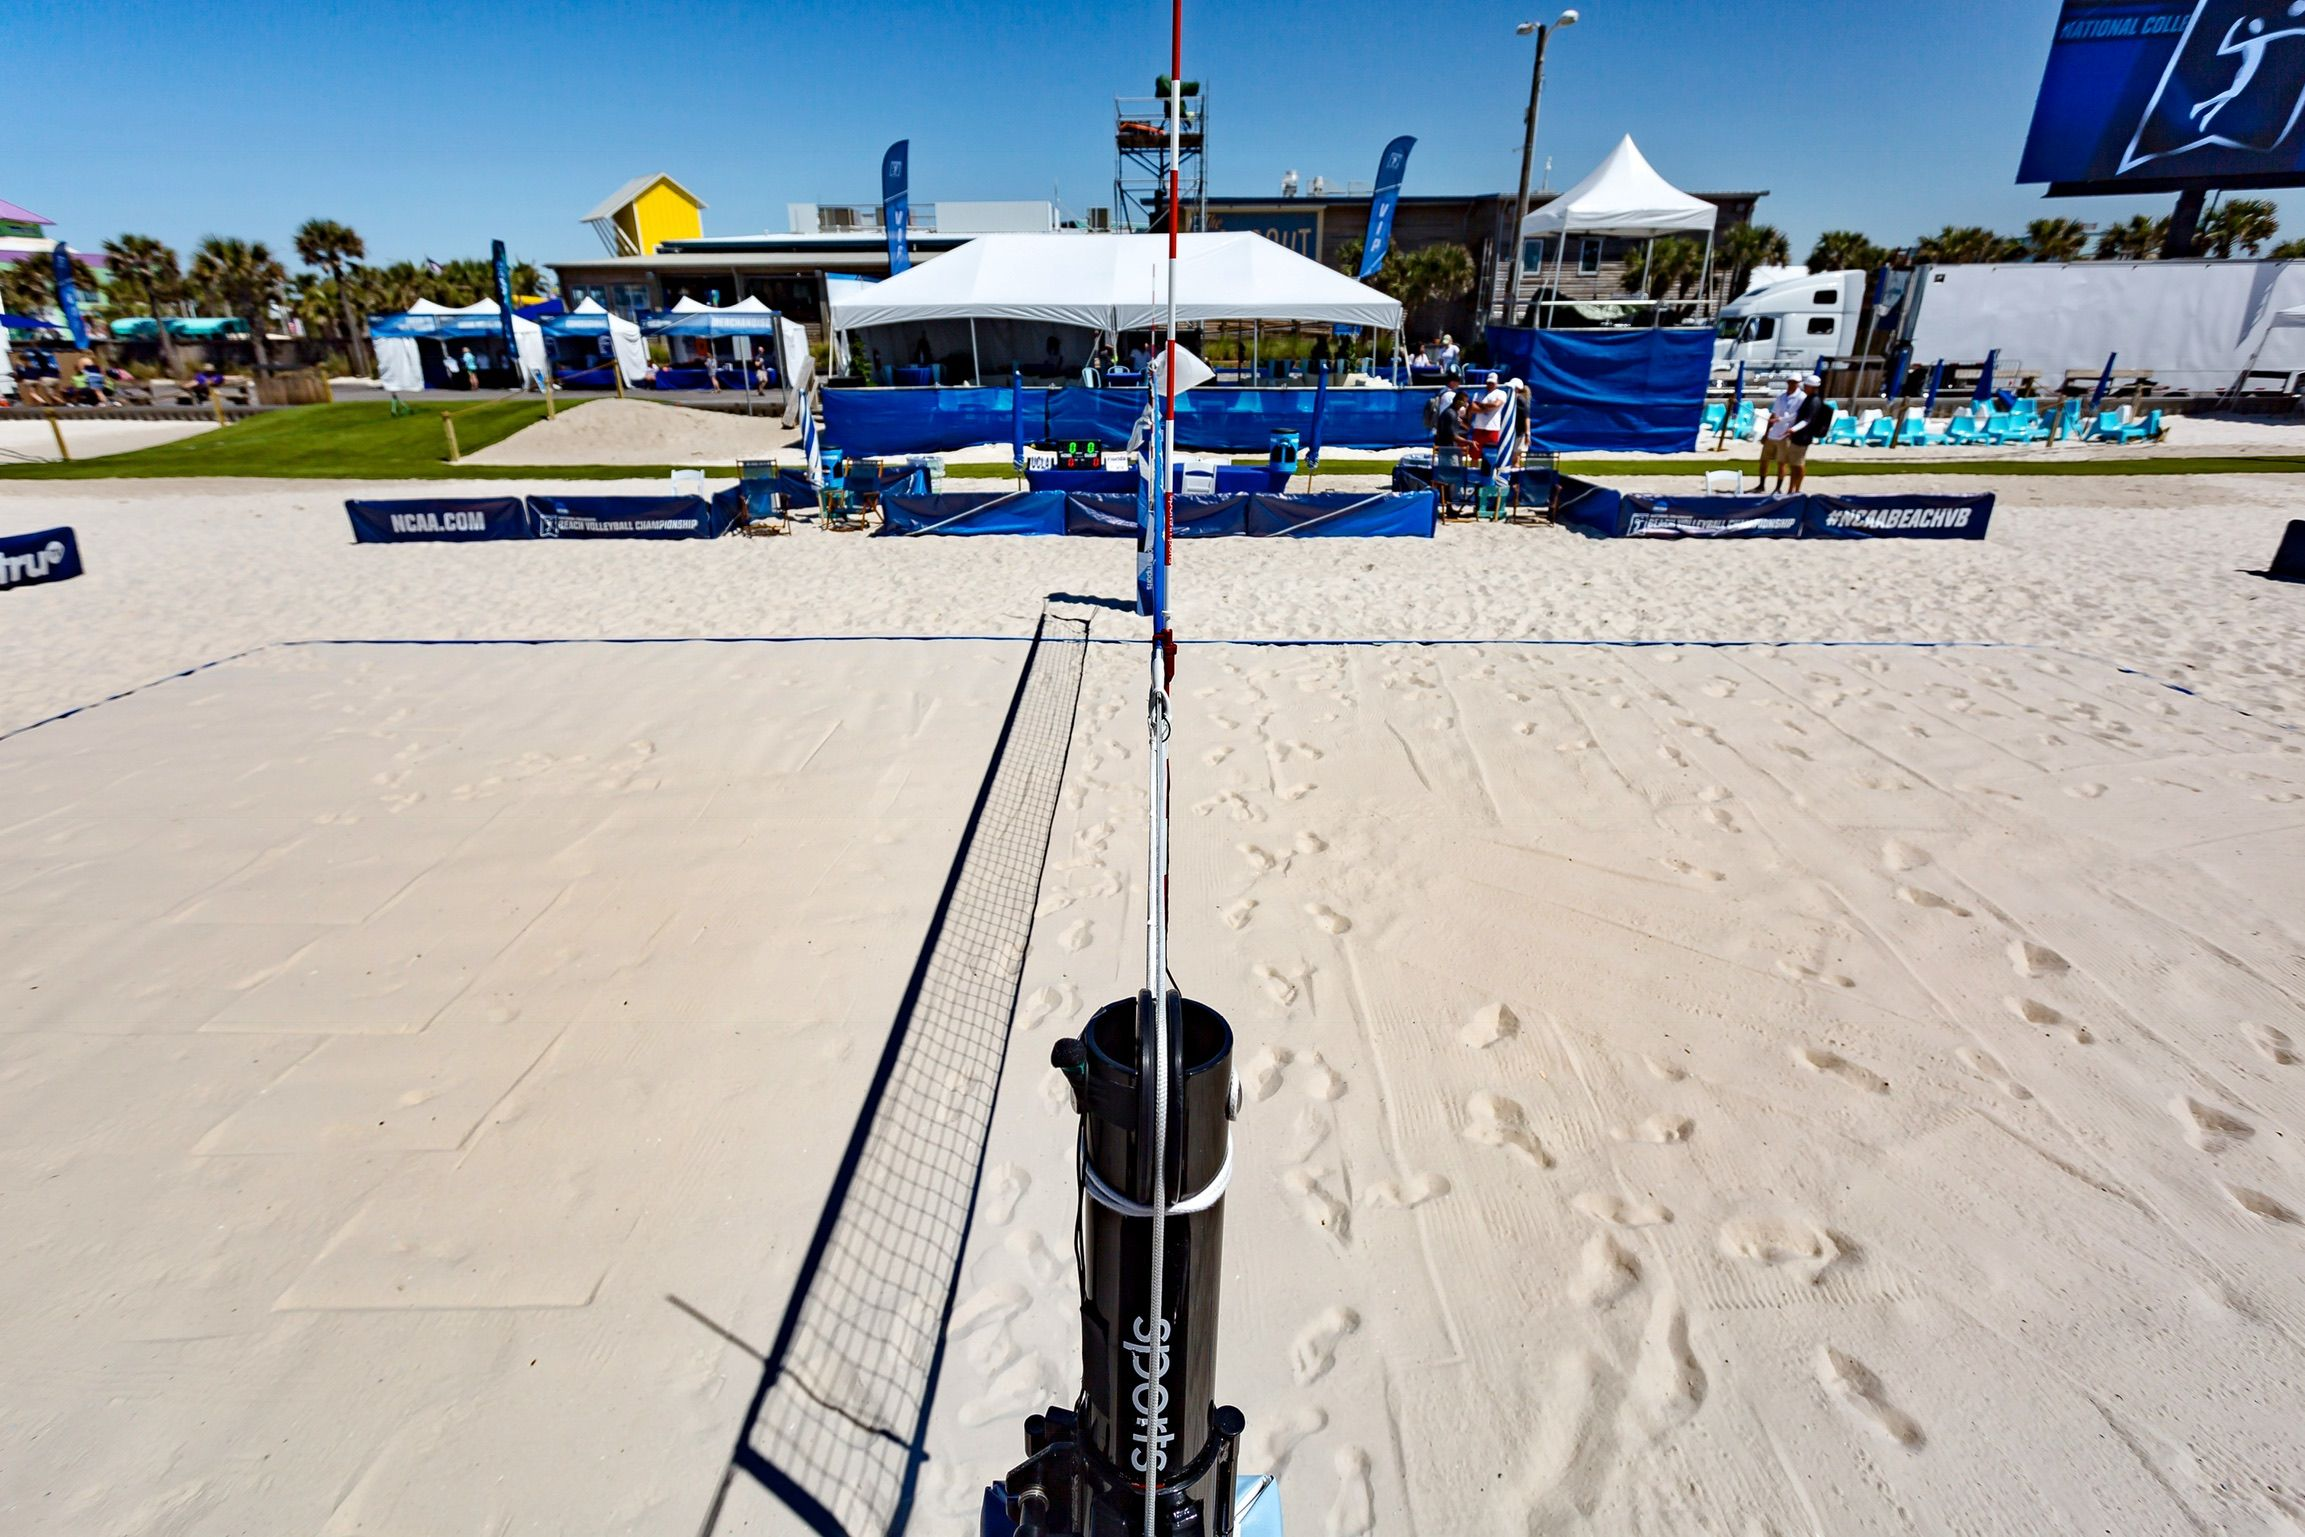 Sports Imports At The Center Of The 2017 Ncaa Beach Volleyball Championship In Gulf Shores Alabama Outdoor Volleyball Net Volleyball Equipment Volleyball